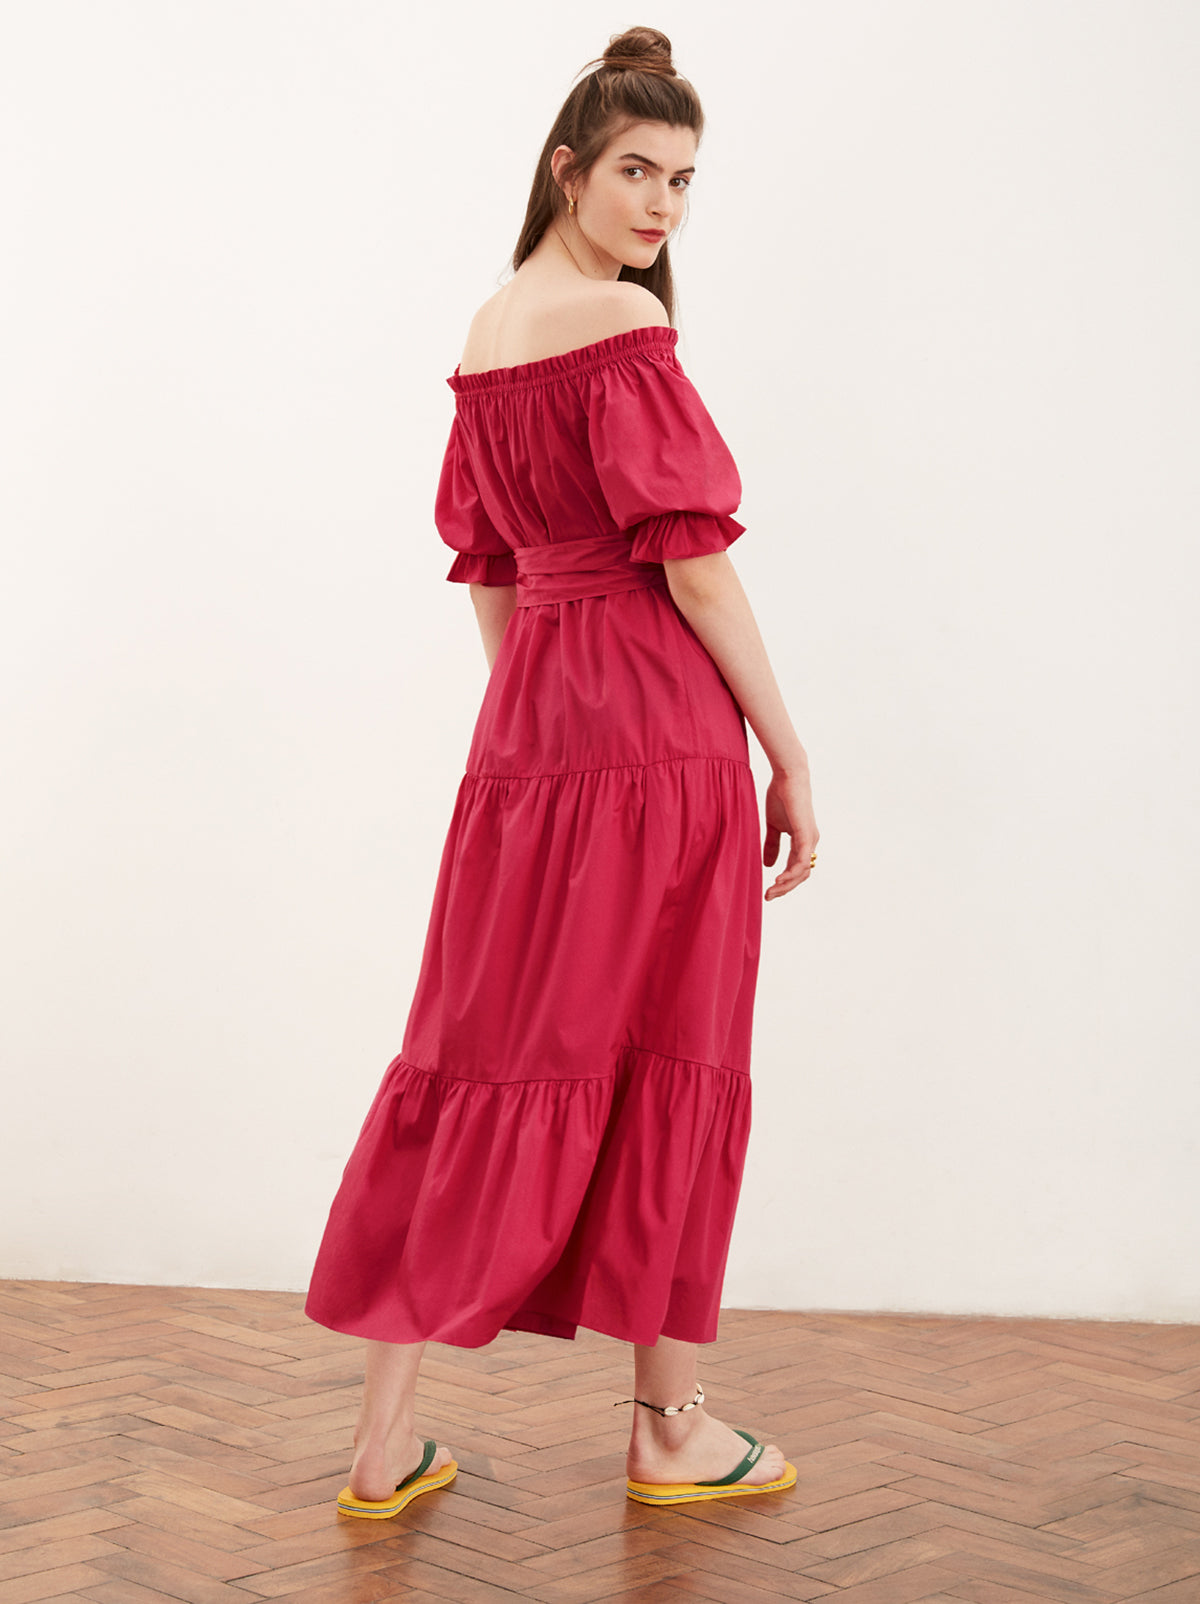 Ione Pink Cotton Bardot Dress by KITRI Studio